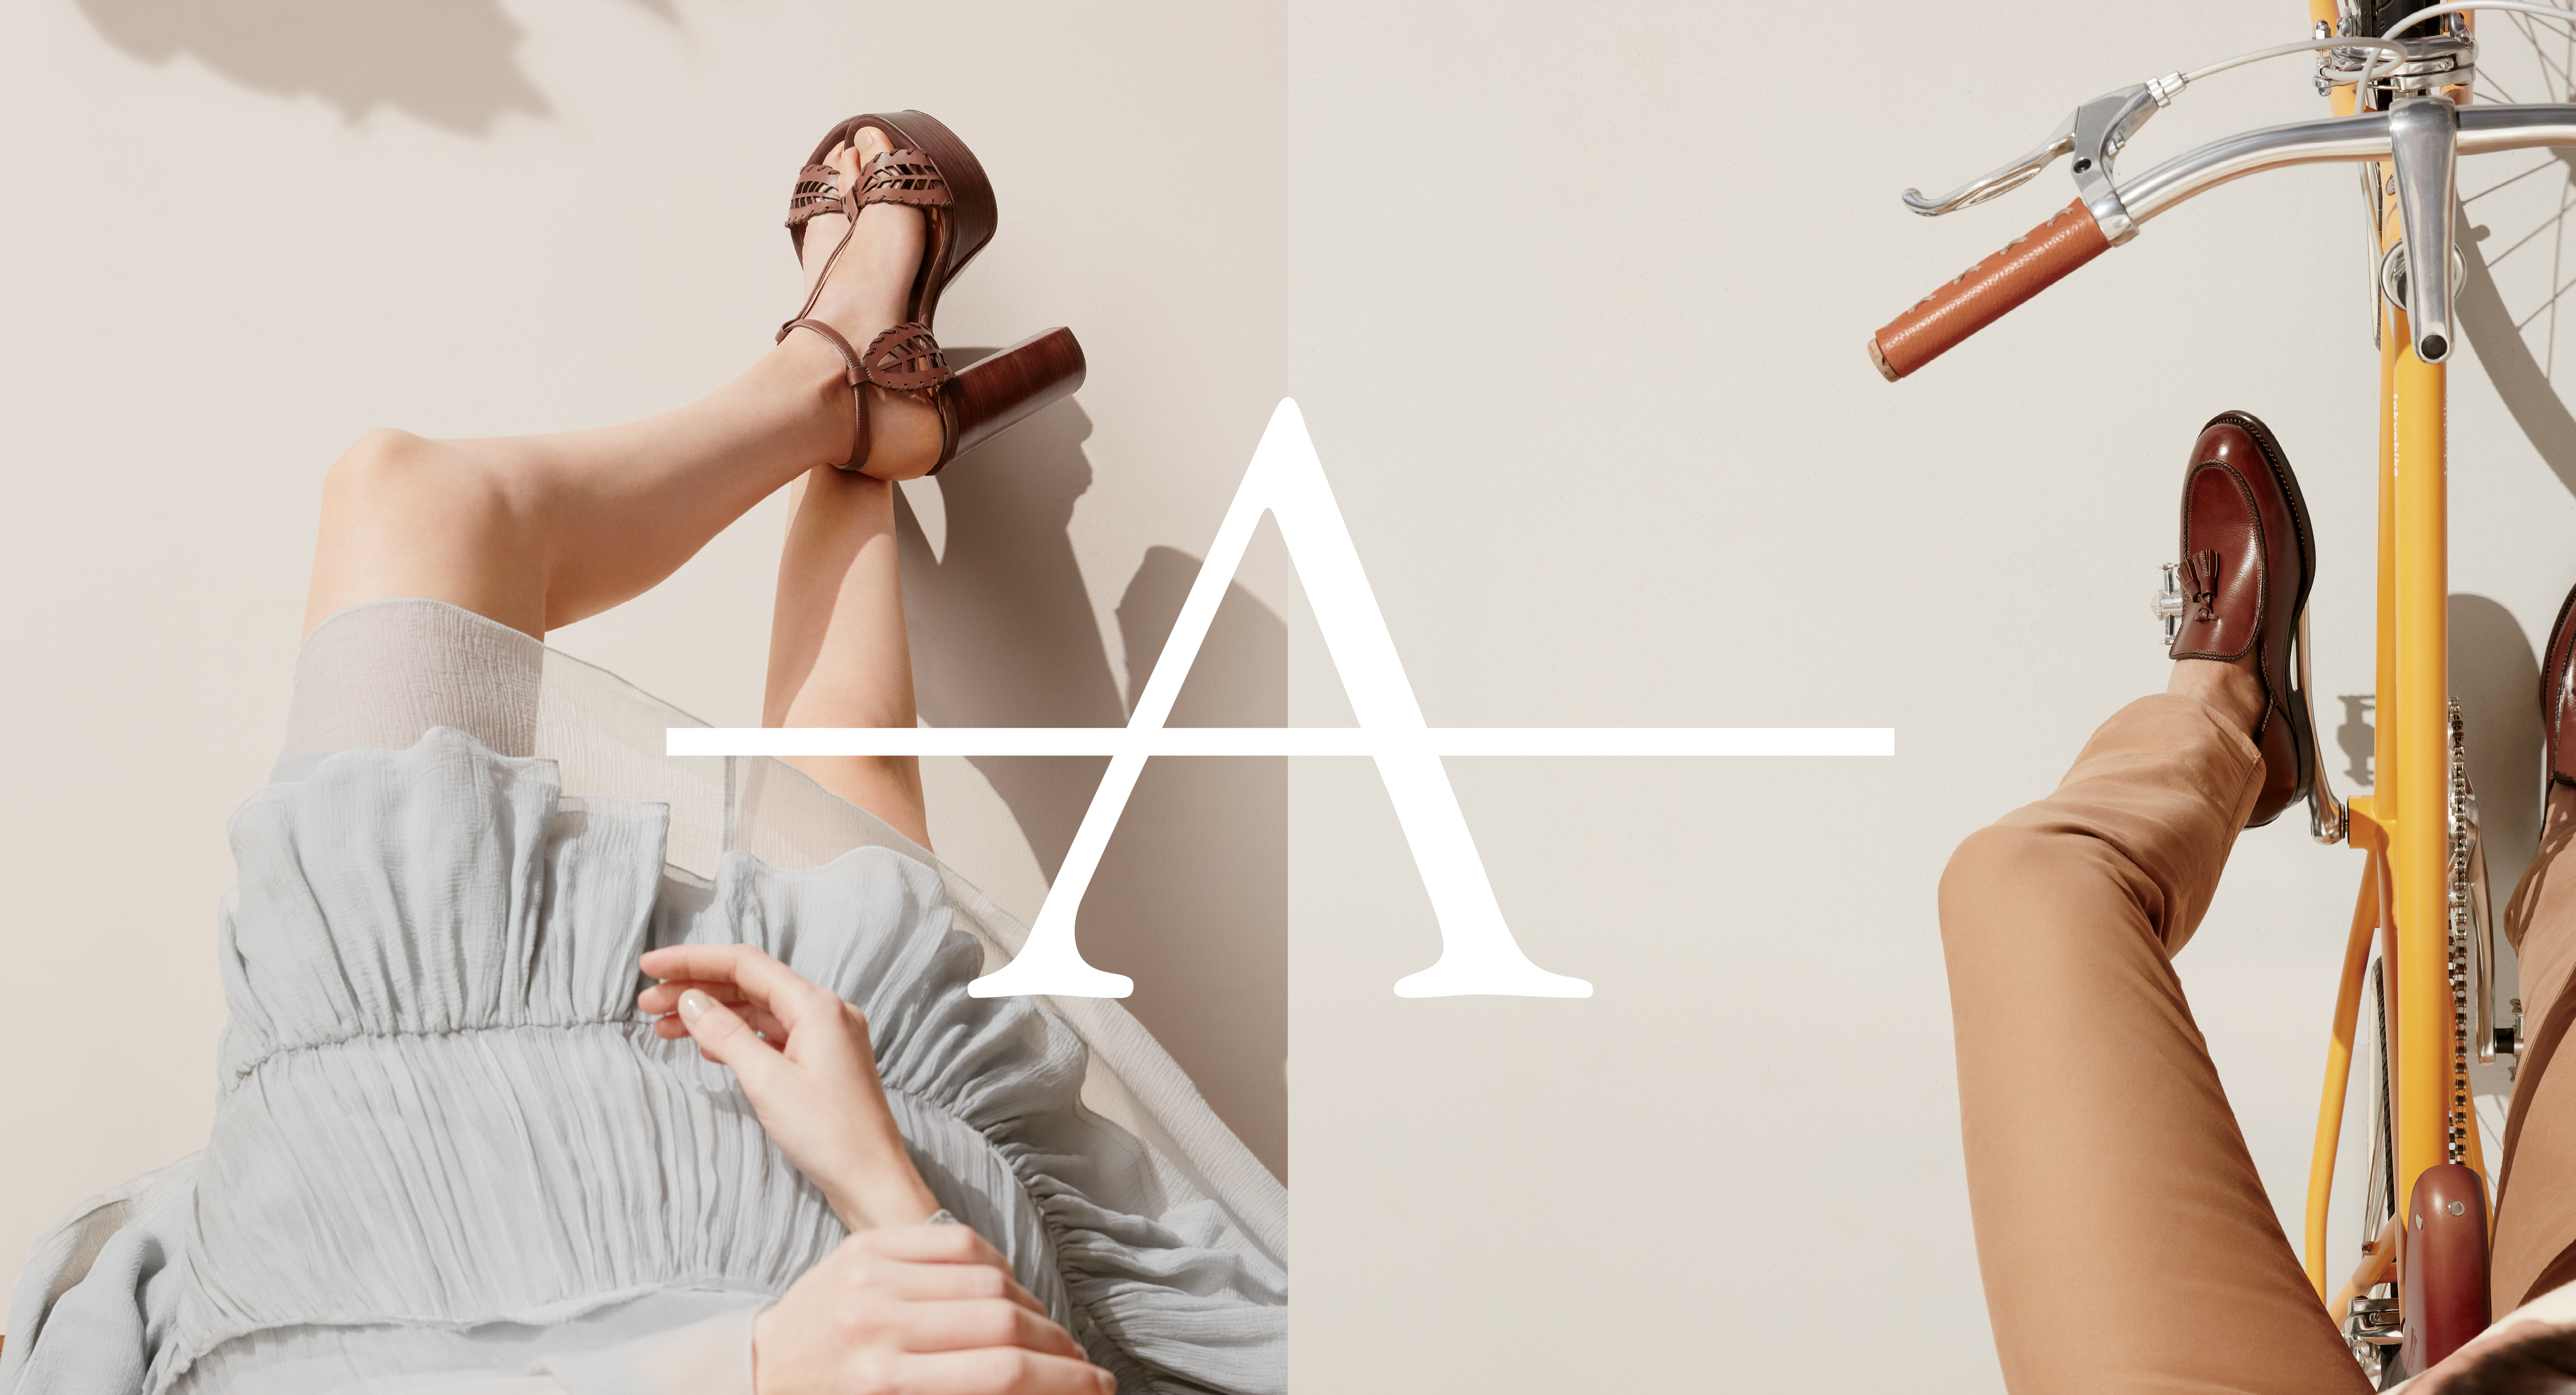 For Aquatalia's Spring 2016 re-launch, DTE led the print campaign with fashion photographer Tommy Ton